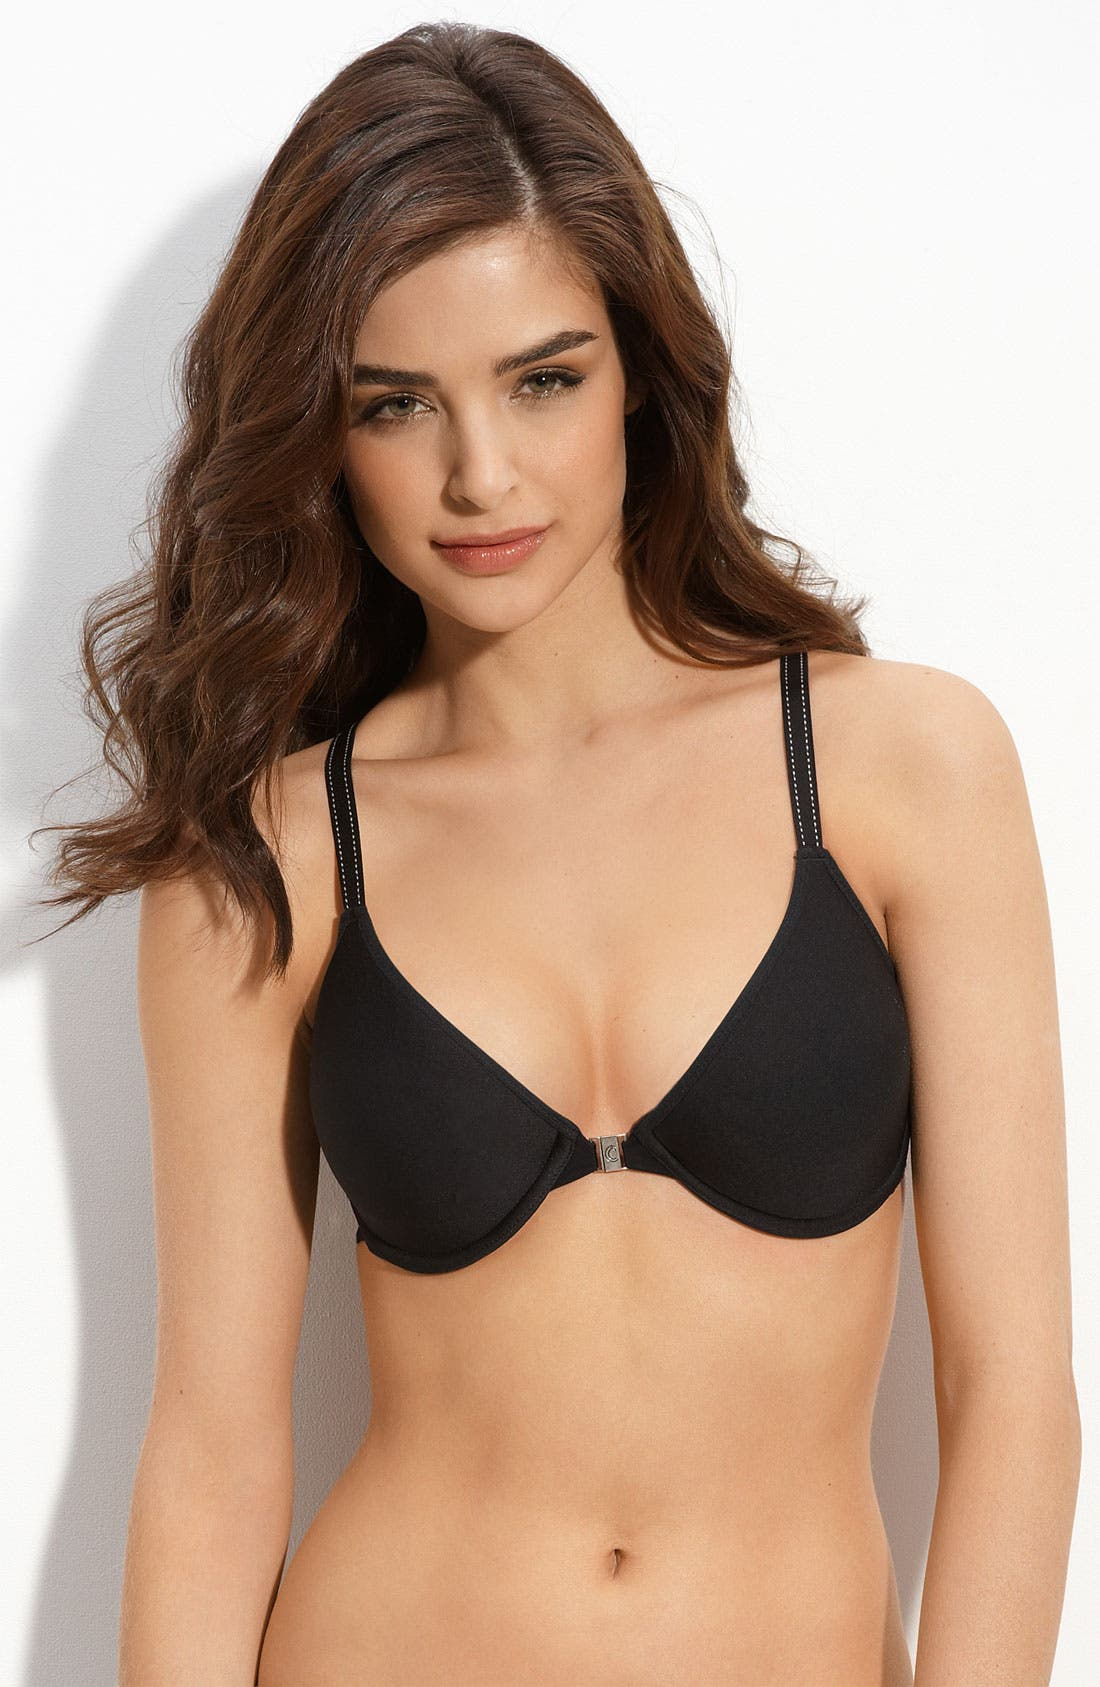 Alternate Image 1 Selected - Chantelle Intimates 'Rive Gauche' Spacer Foam Racerback Bra